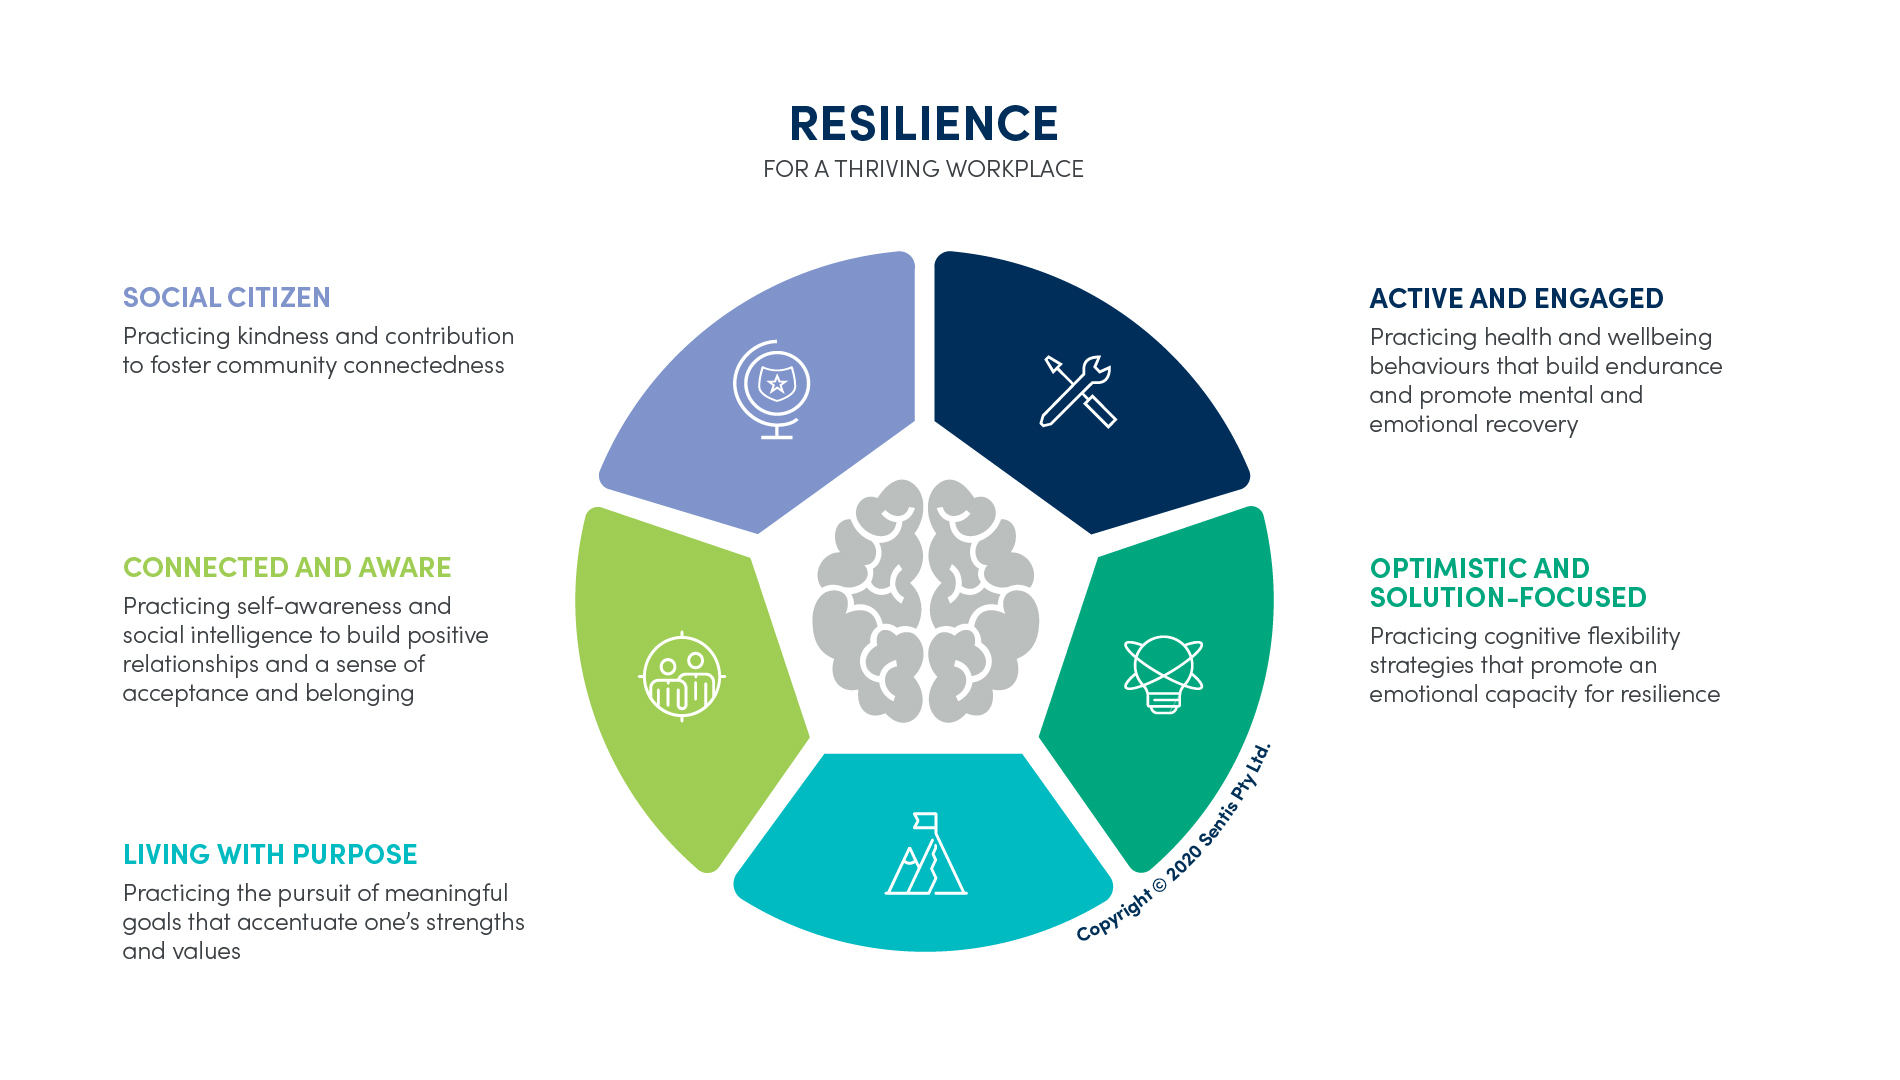 Sentis - The Five Practices of Resilience Model